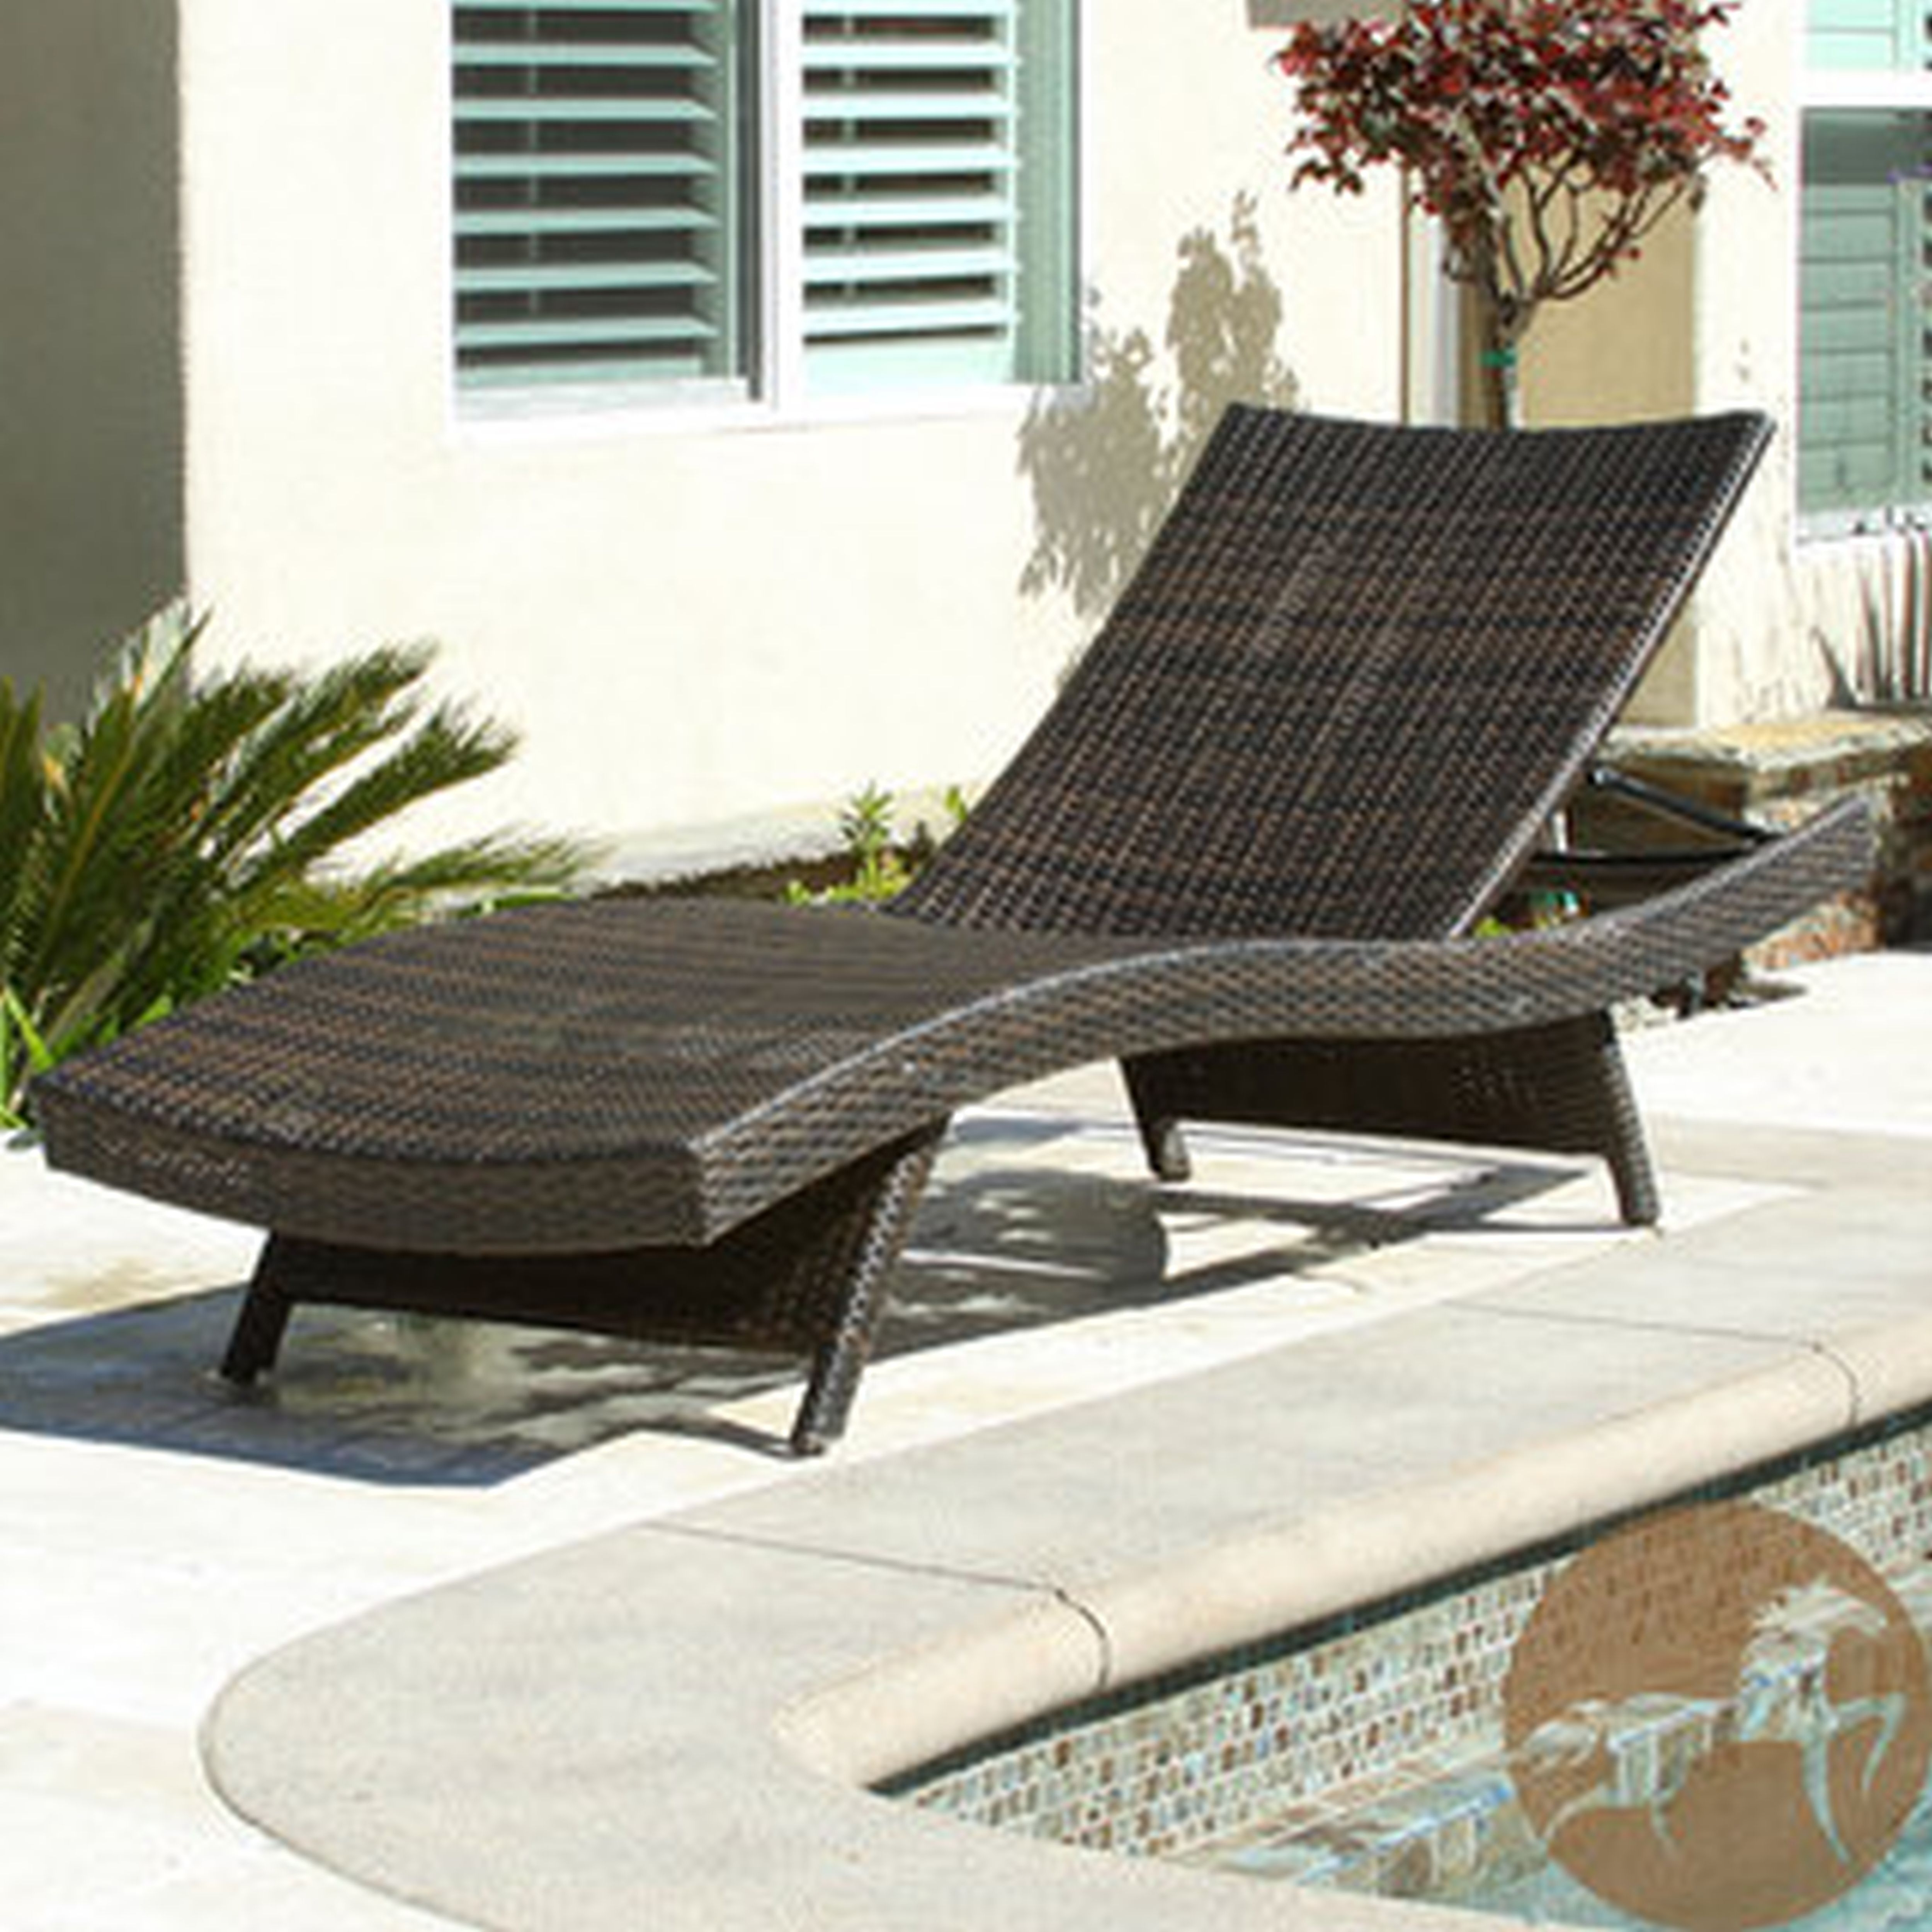 Chaise Lounge Chairs For Outdoor With Regard To Recent Convertible Chair : Cushions Rattan Chair Cushions High Back Patio (View 9 of 15)